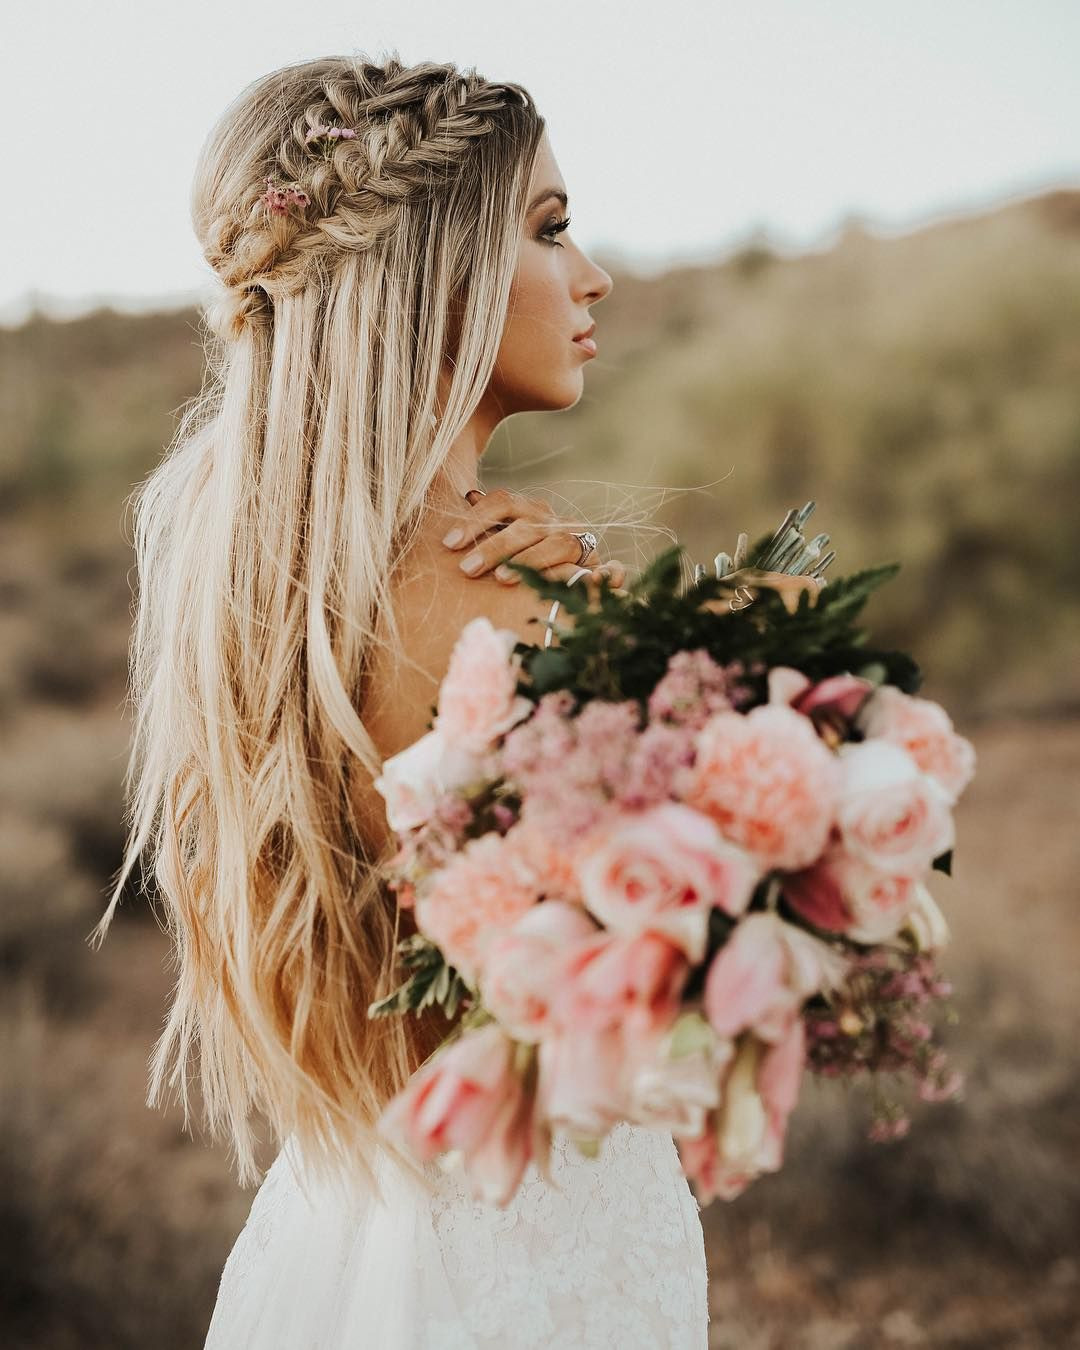 Wedding Hairstyle For Bride: Long Hairstyle